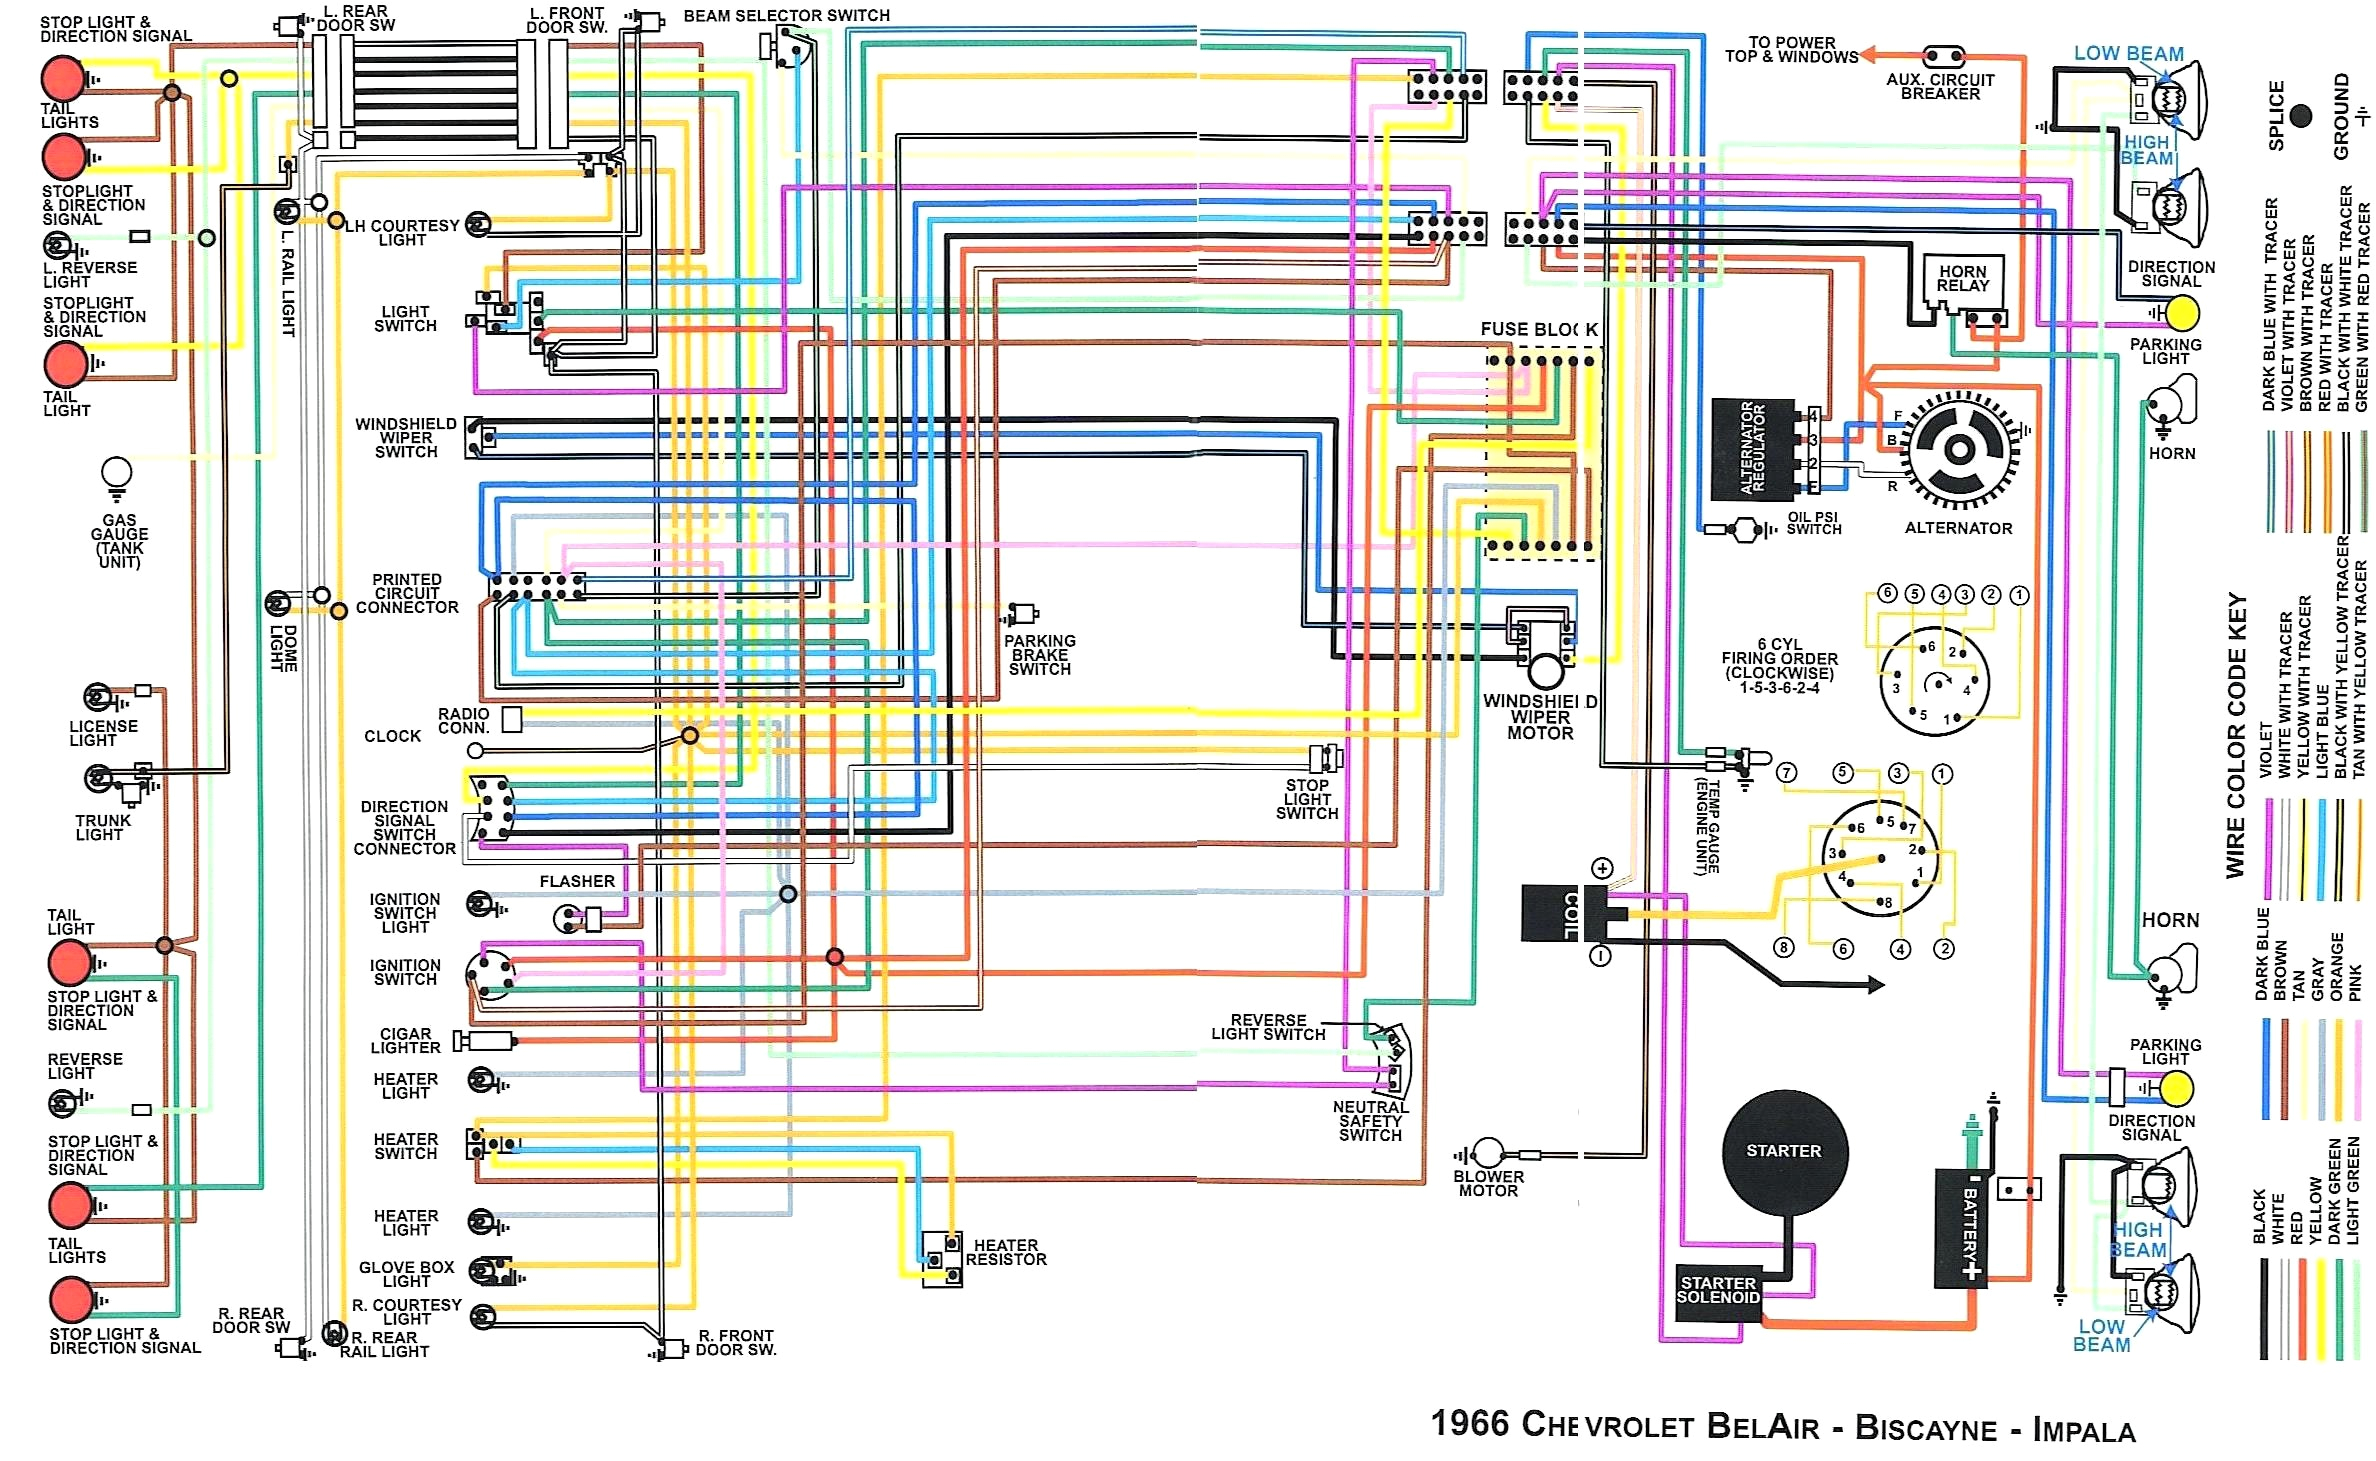 wiring diagram for 1960 chevy impala wiring diagram load 1960 impala wiring diagram